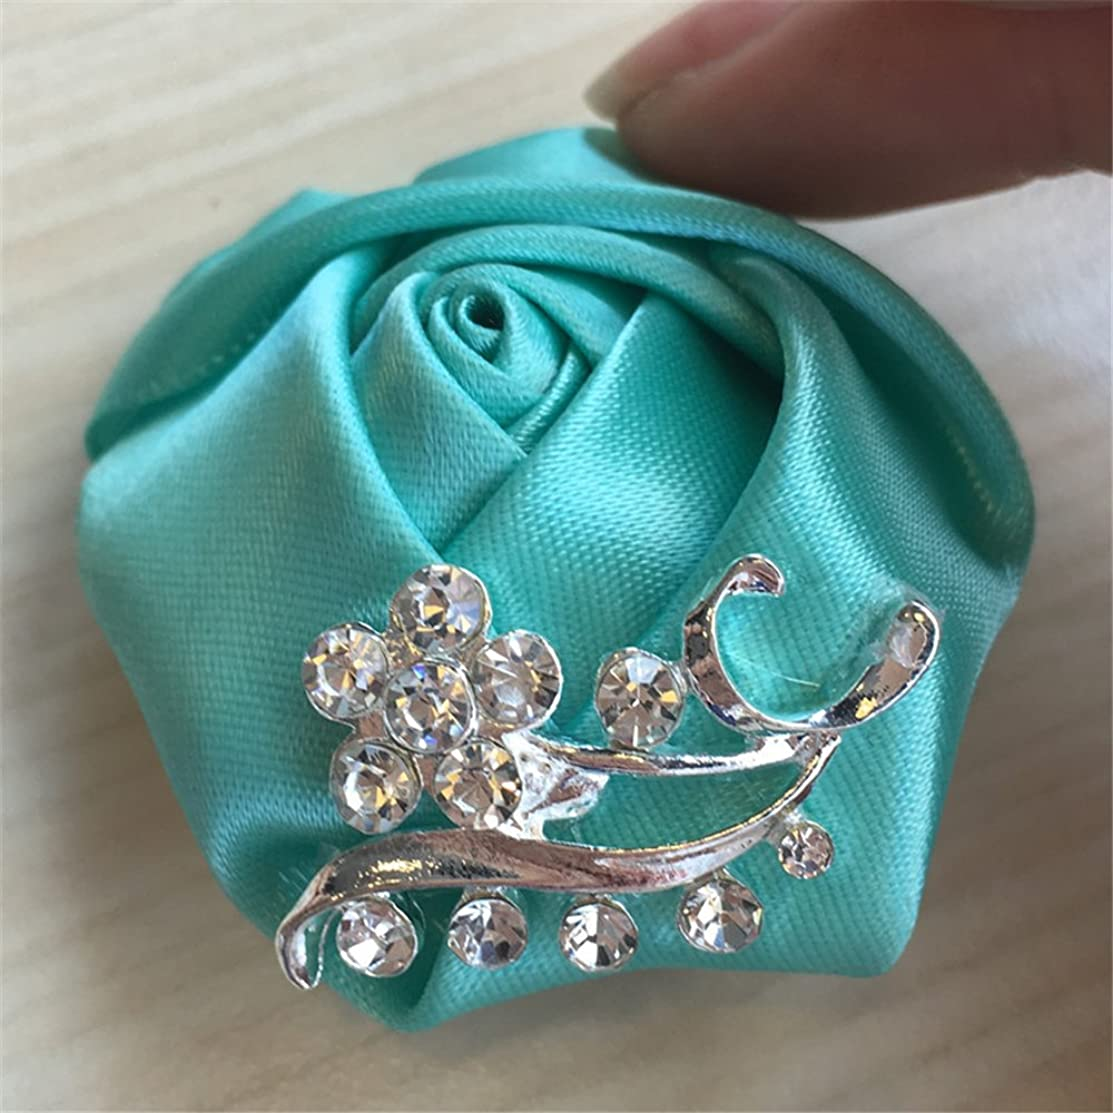 USIX 6pc Pack-Handmade Men's Women's Multi Solid Color Satin Flower Rose Crystal Rhinestone Boutonniere Brooch Pin for Suits Dresses Scarf Decoration Accessories Jewelry(Tiffany Blue)